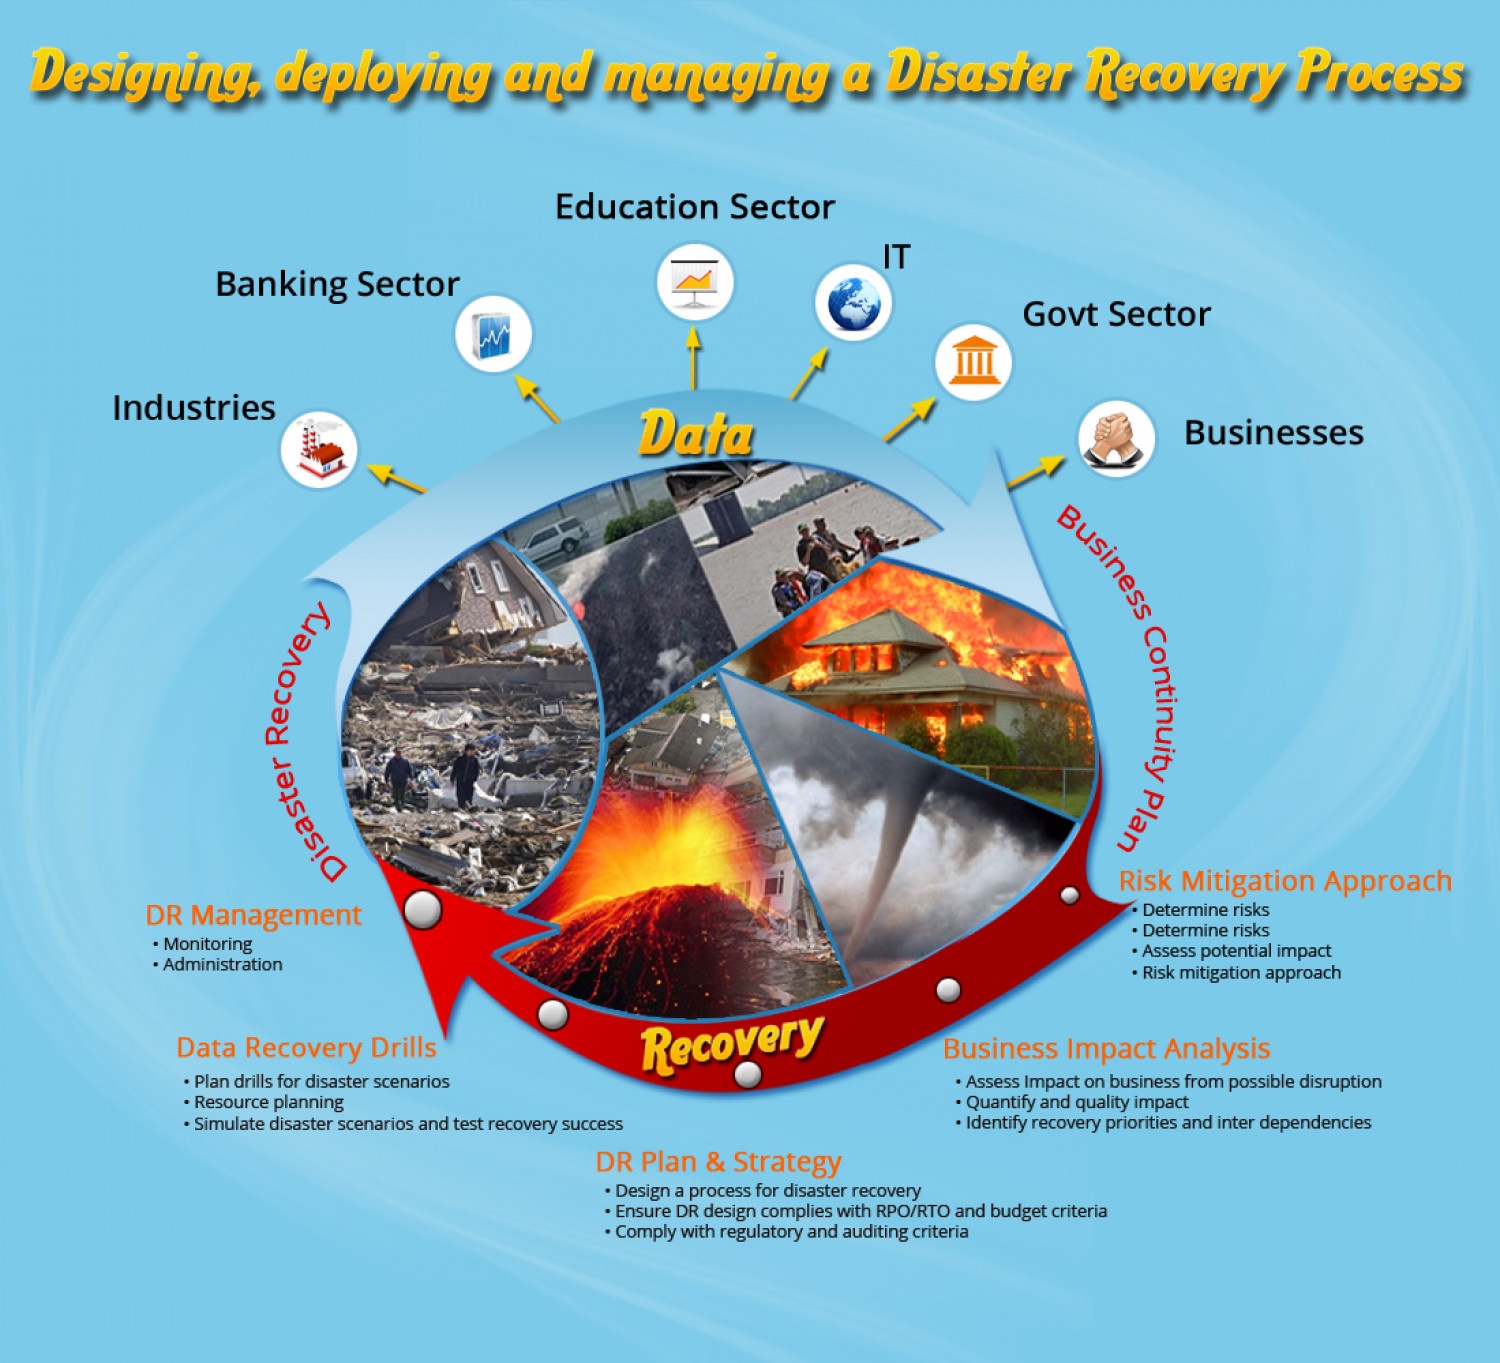 Designing, deploying and managing a Disaster Recovery Process Infographic